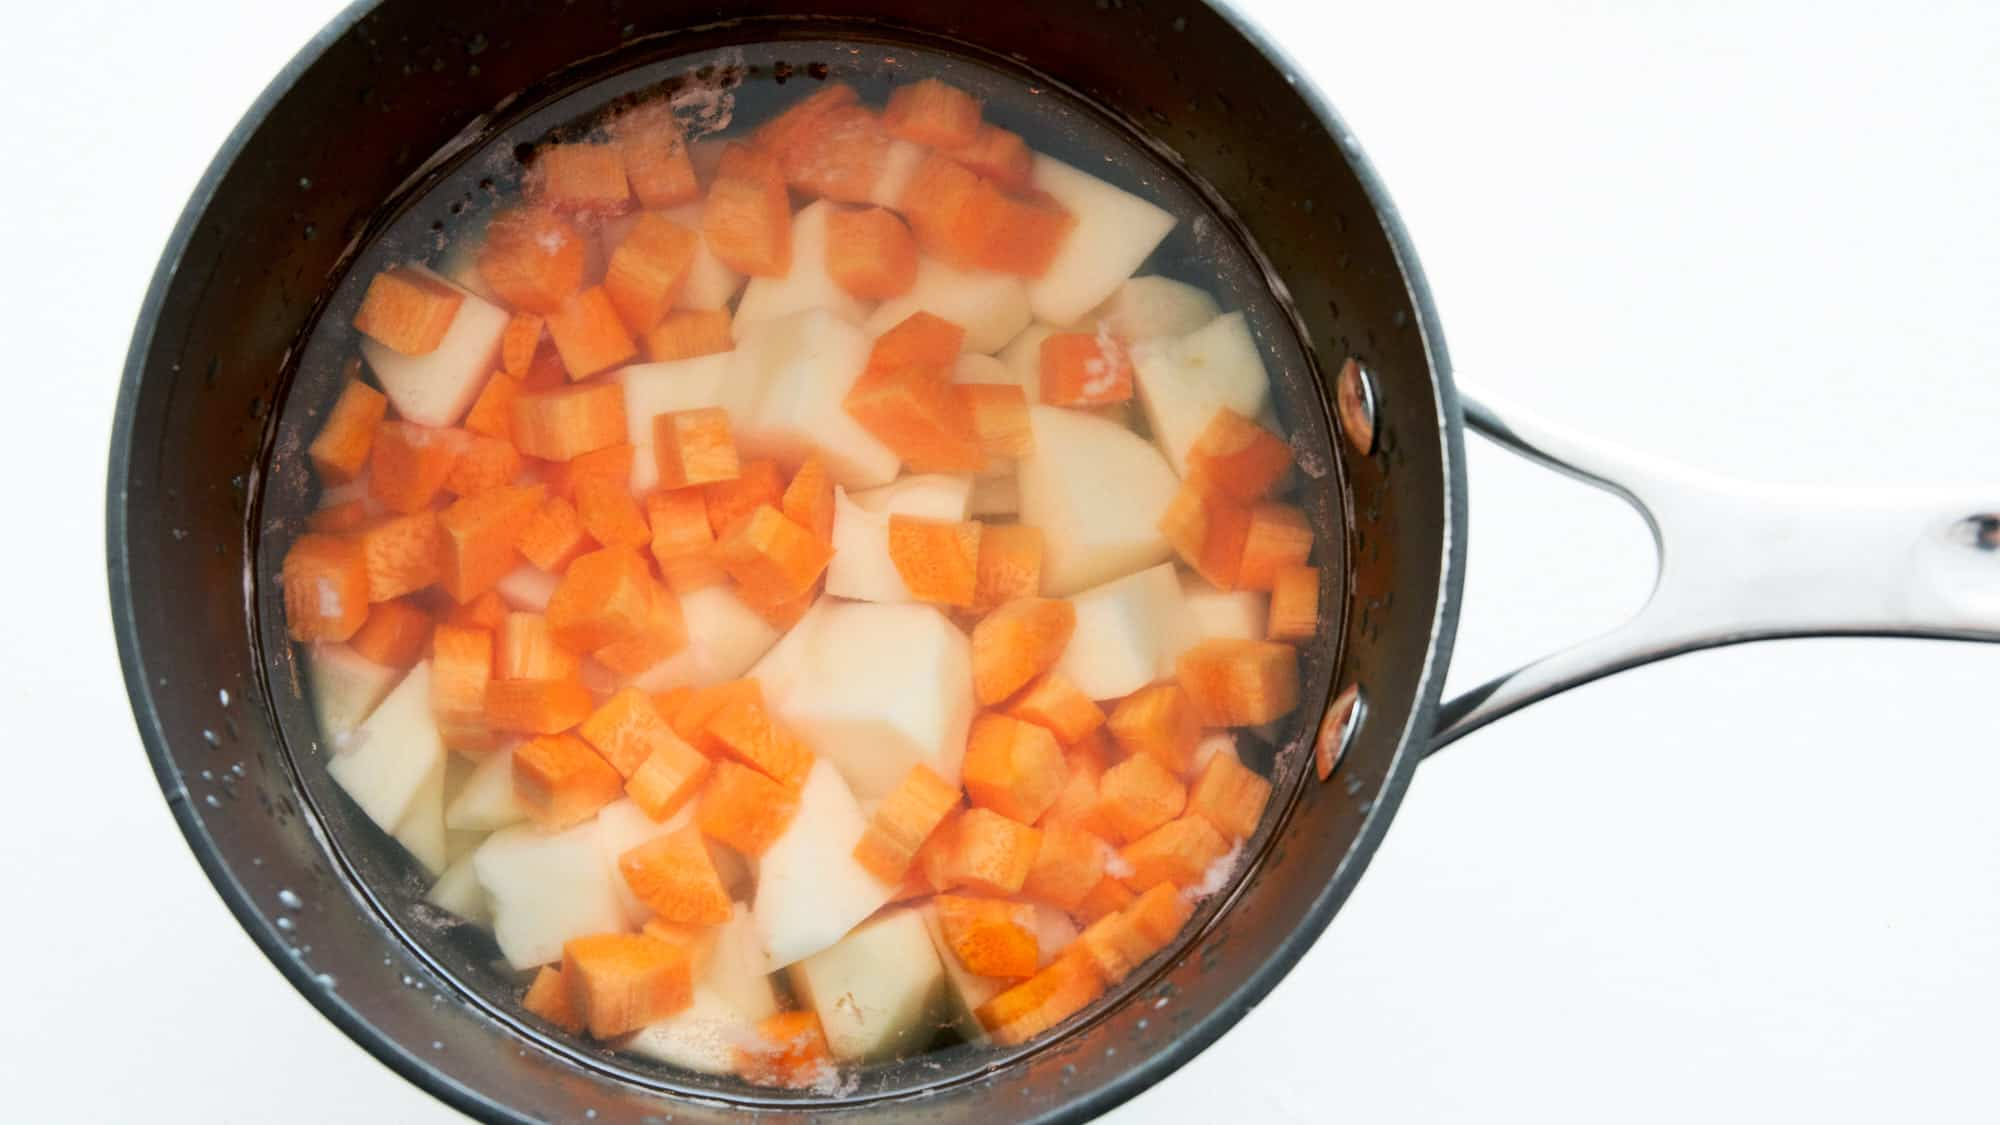 Raw potatoes and carrots cut into cubes in a pot of water. For making potato salad.